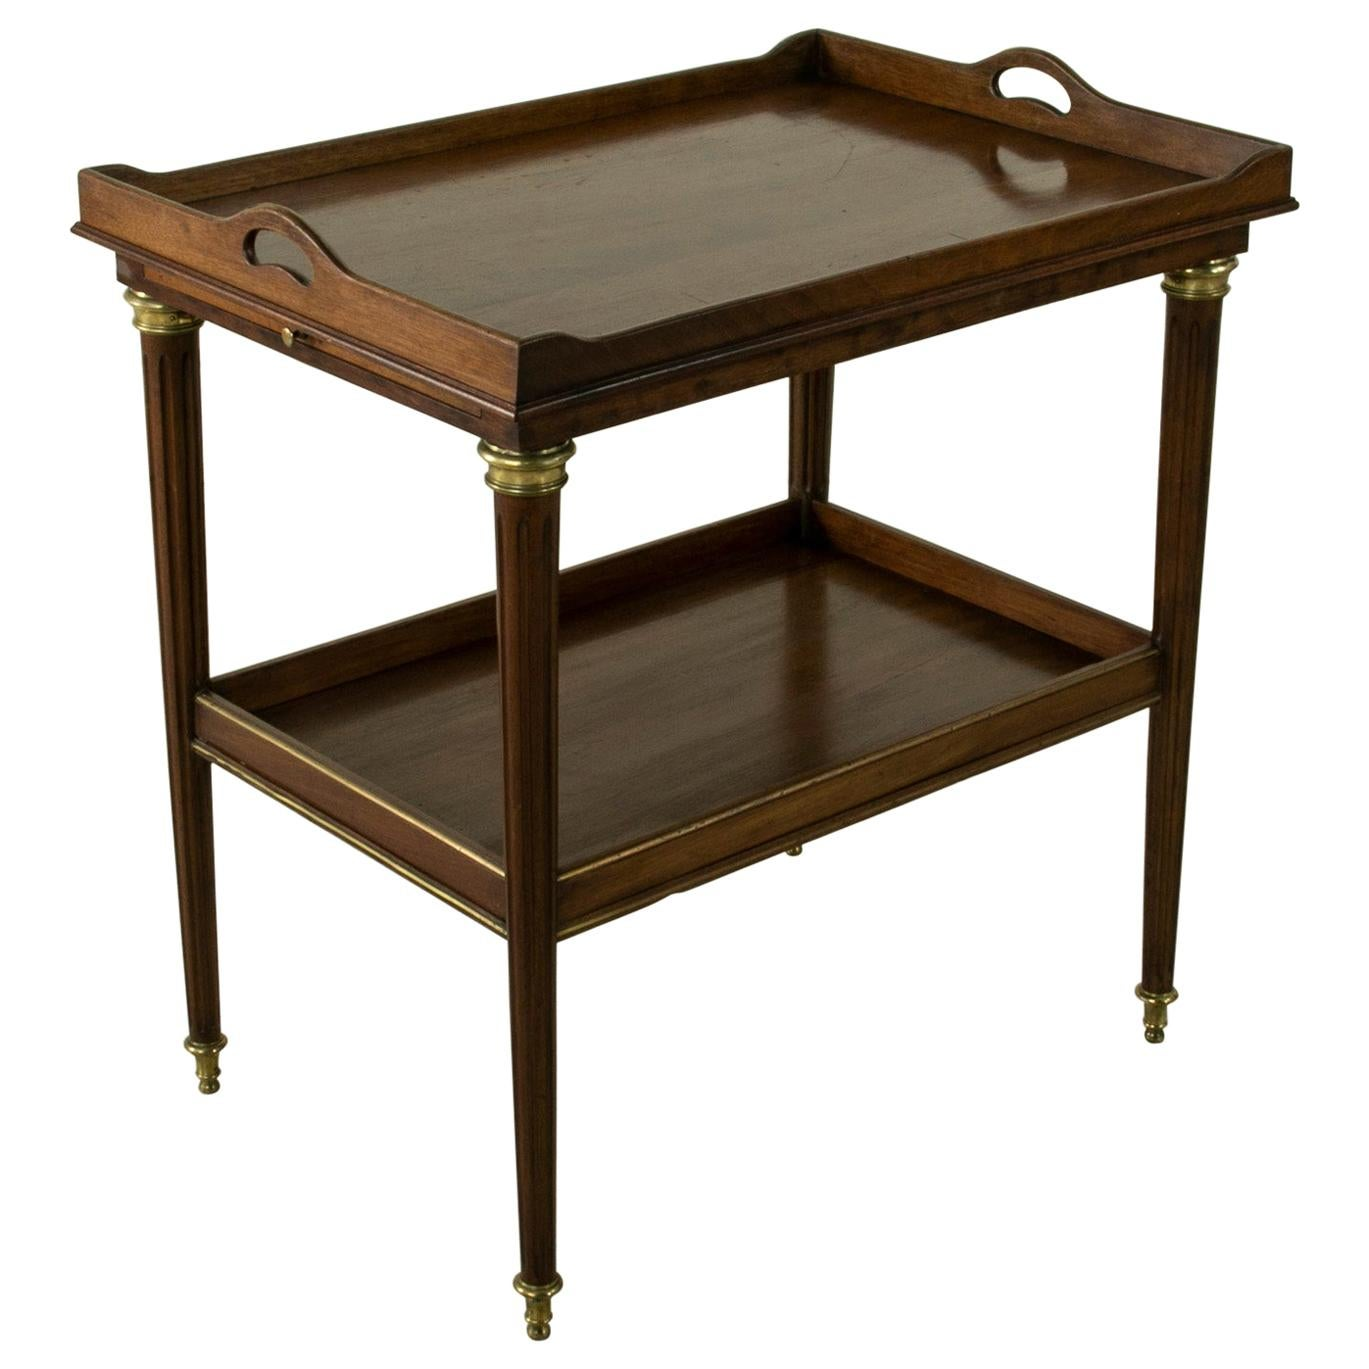 Late 19th Century French Louis XVI Style Mahogany Tray Table with Bronze Details